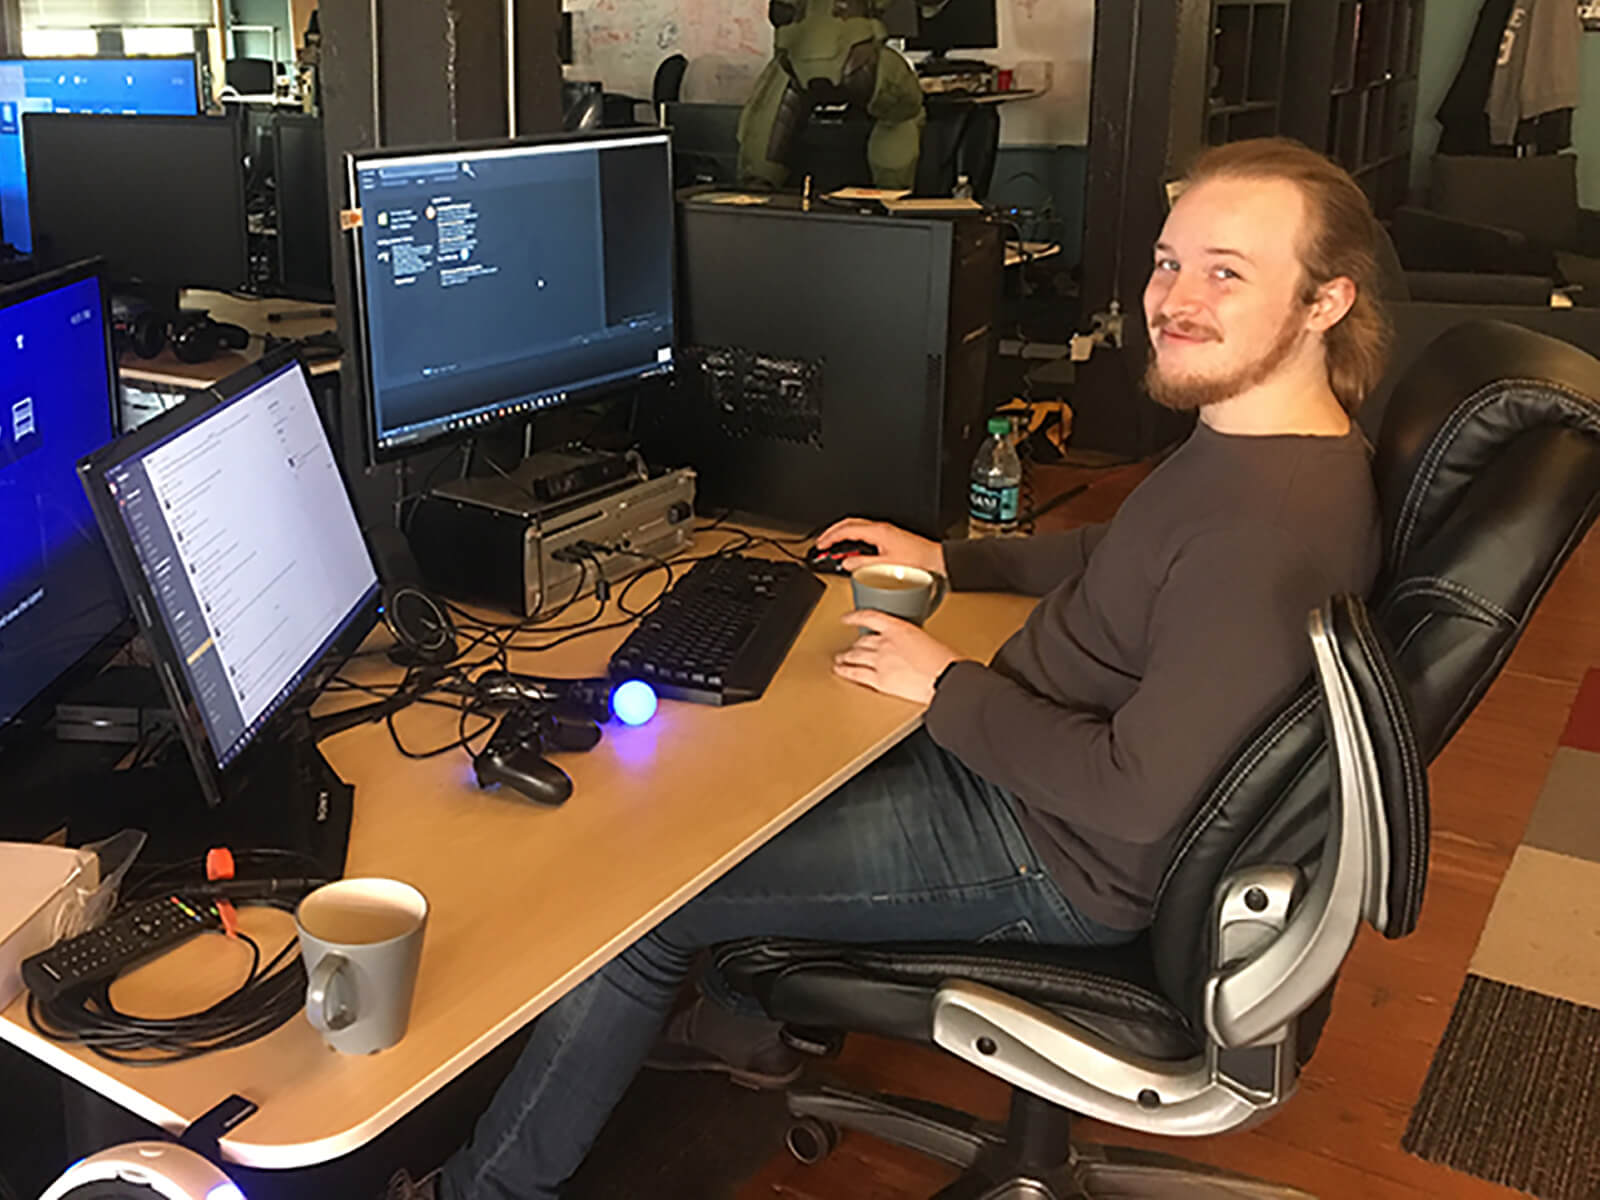 DigiPen alumnus Ian Shores sits at his desk at the Highwire Games office